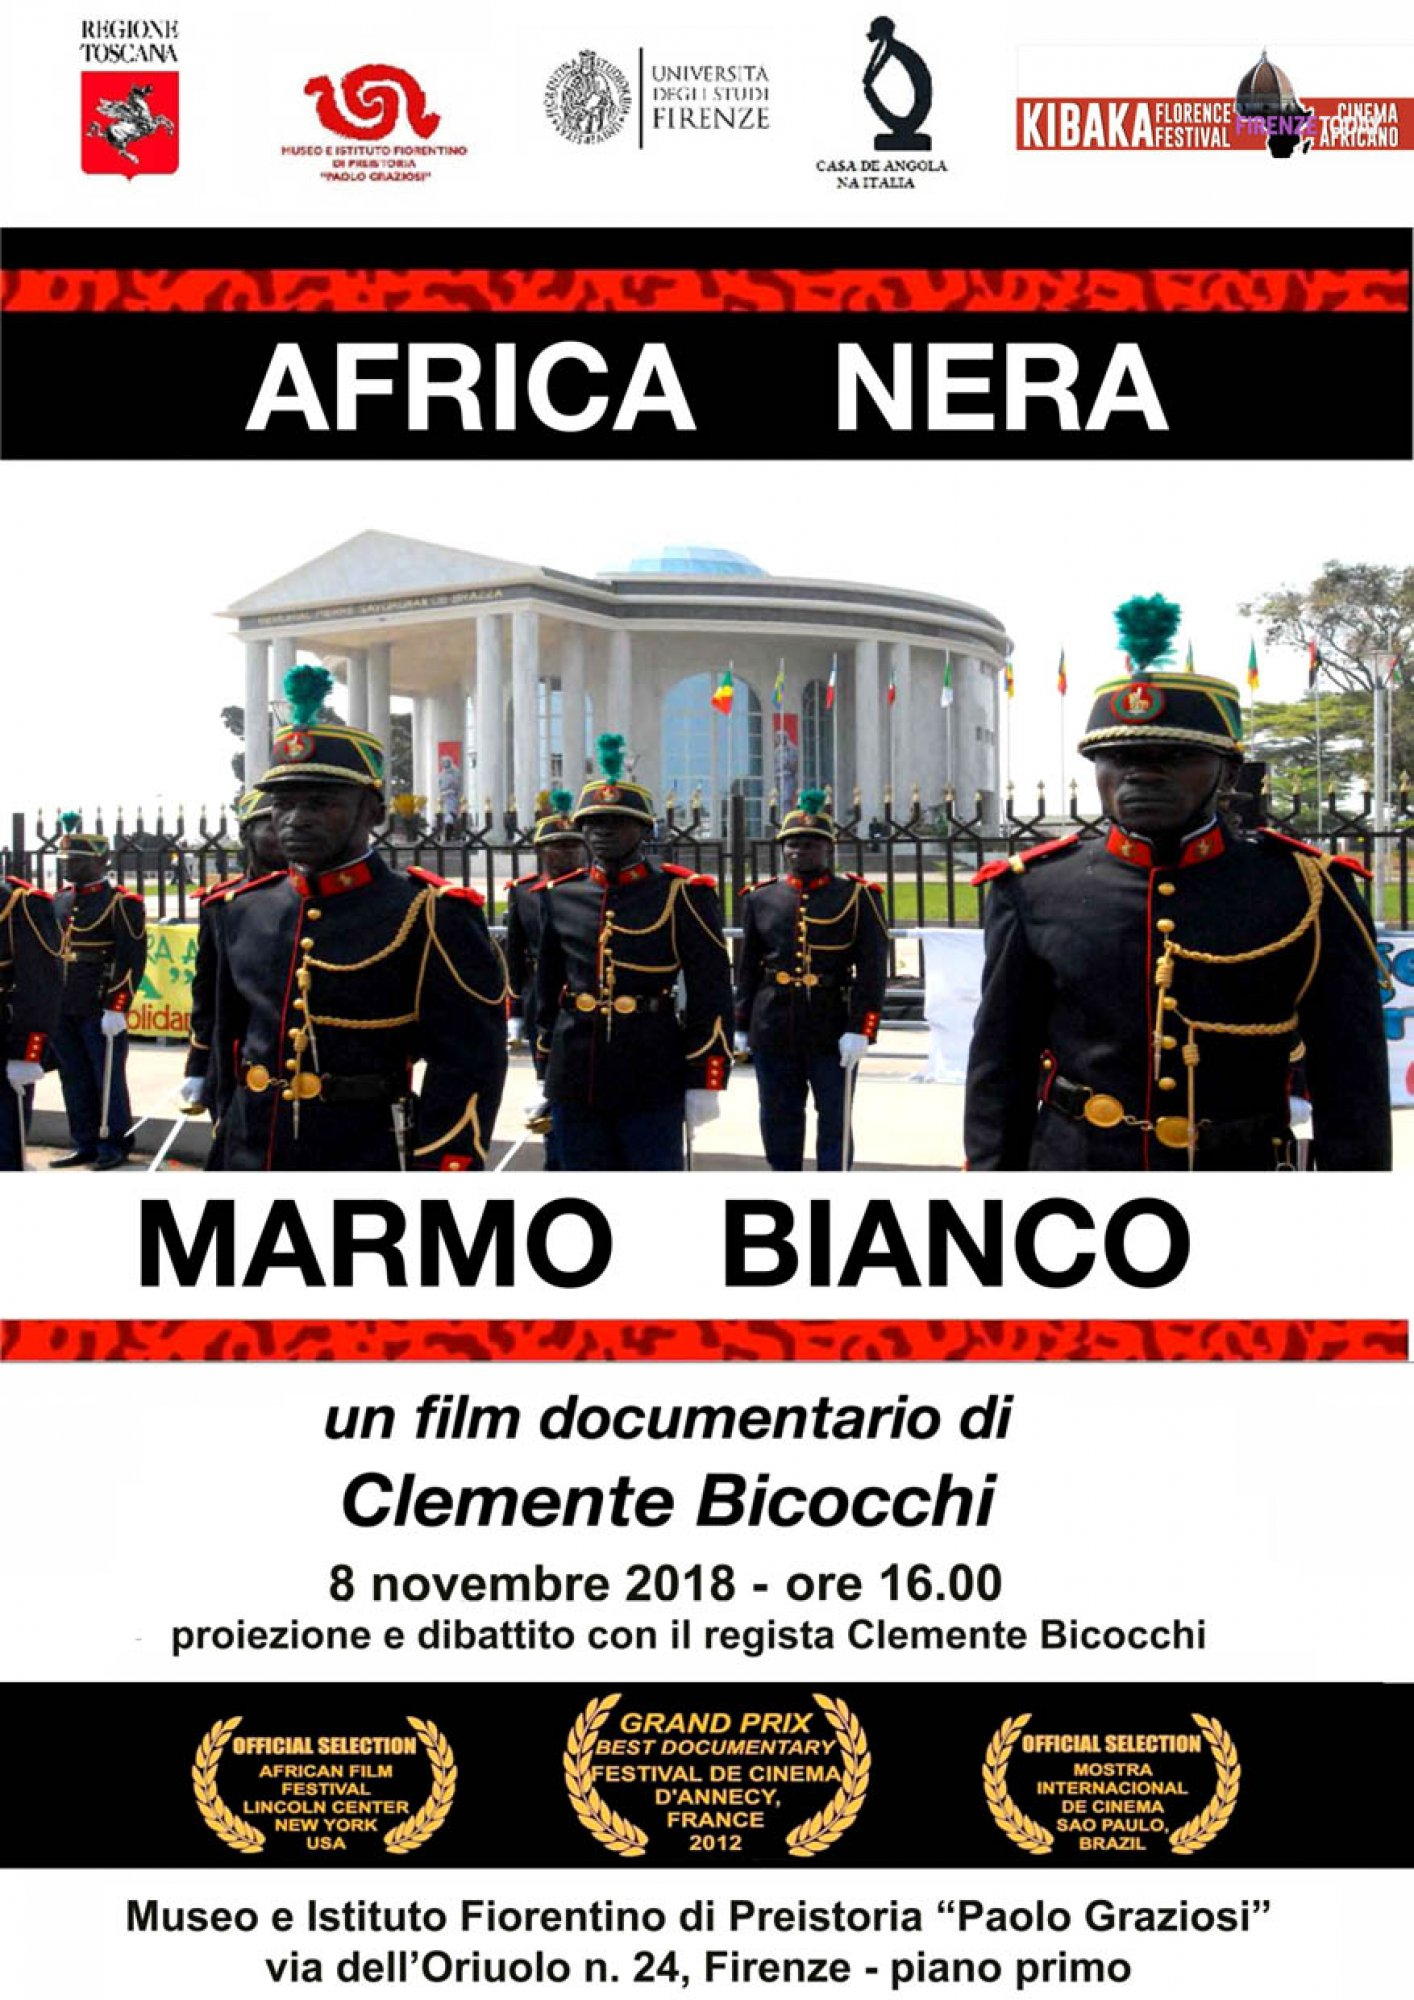 """AFRICA NERA MARMO BIANCO"" - film documentario"